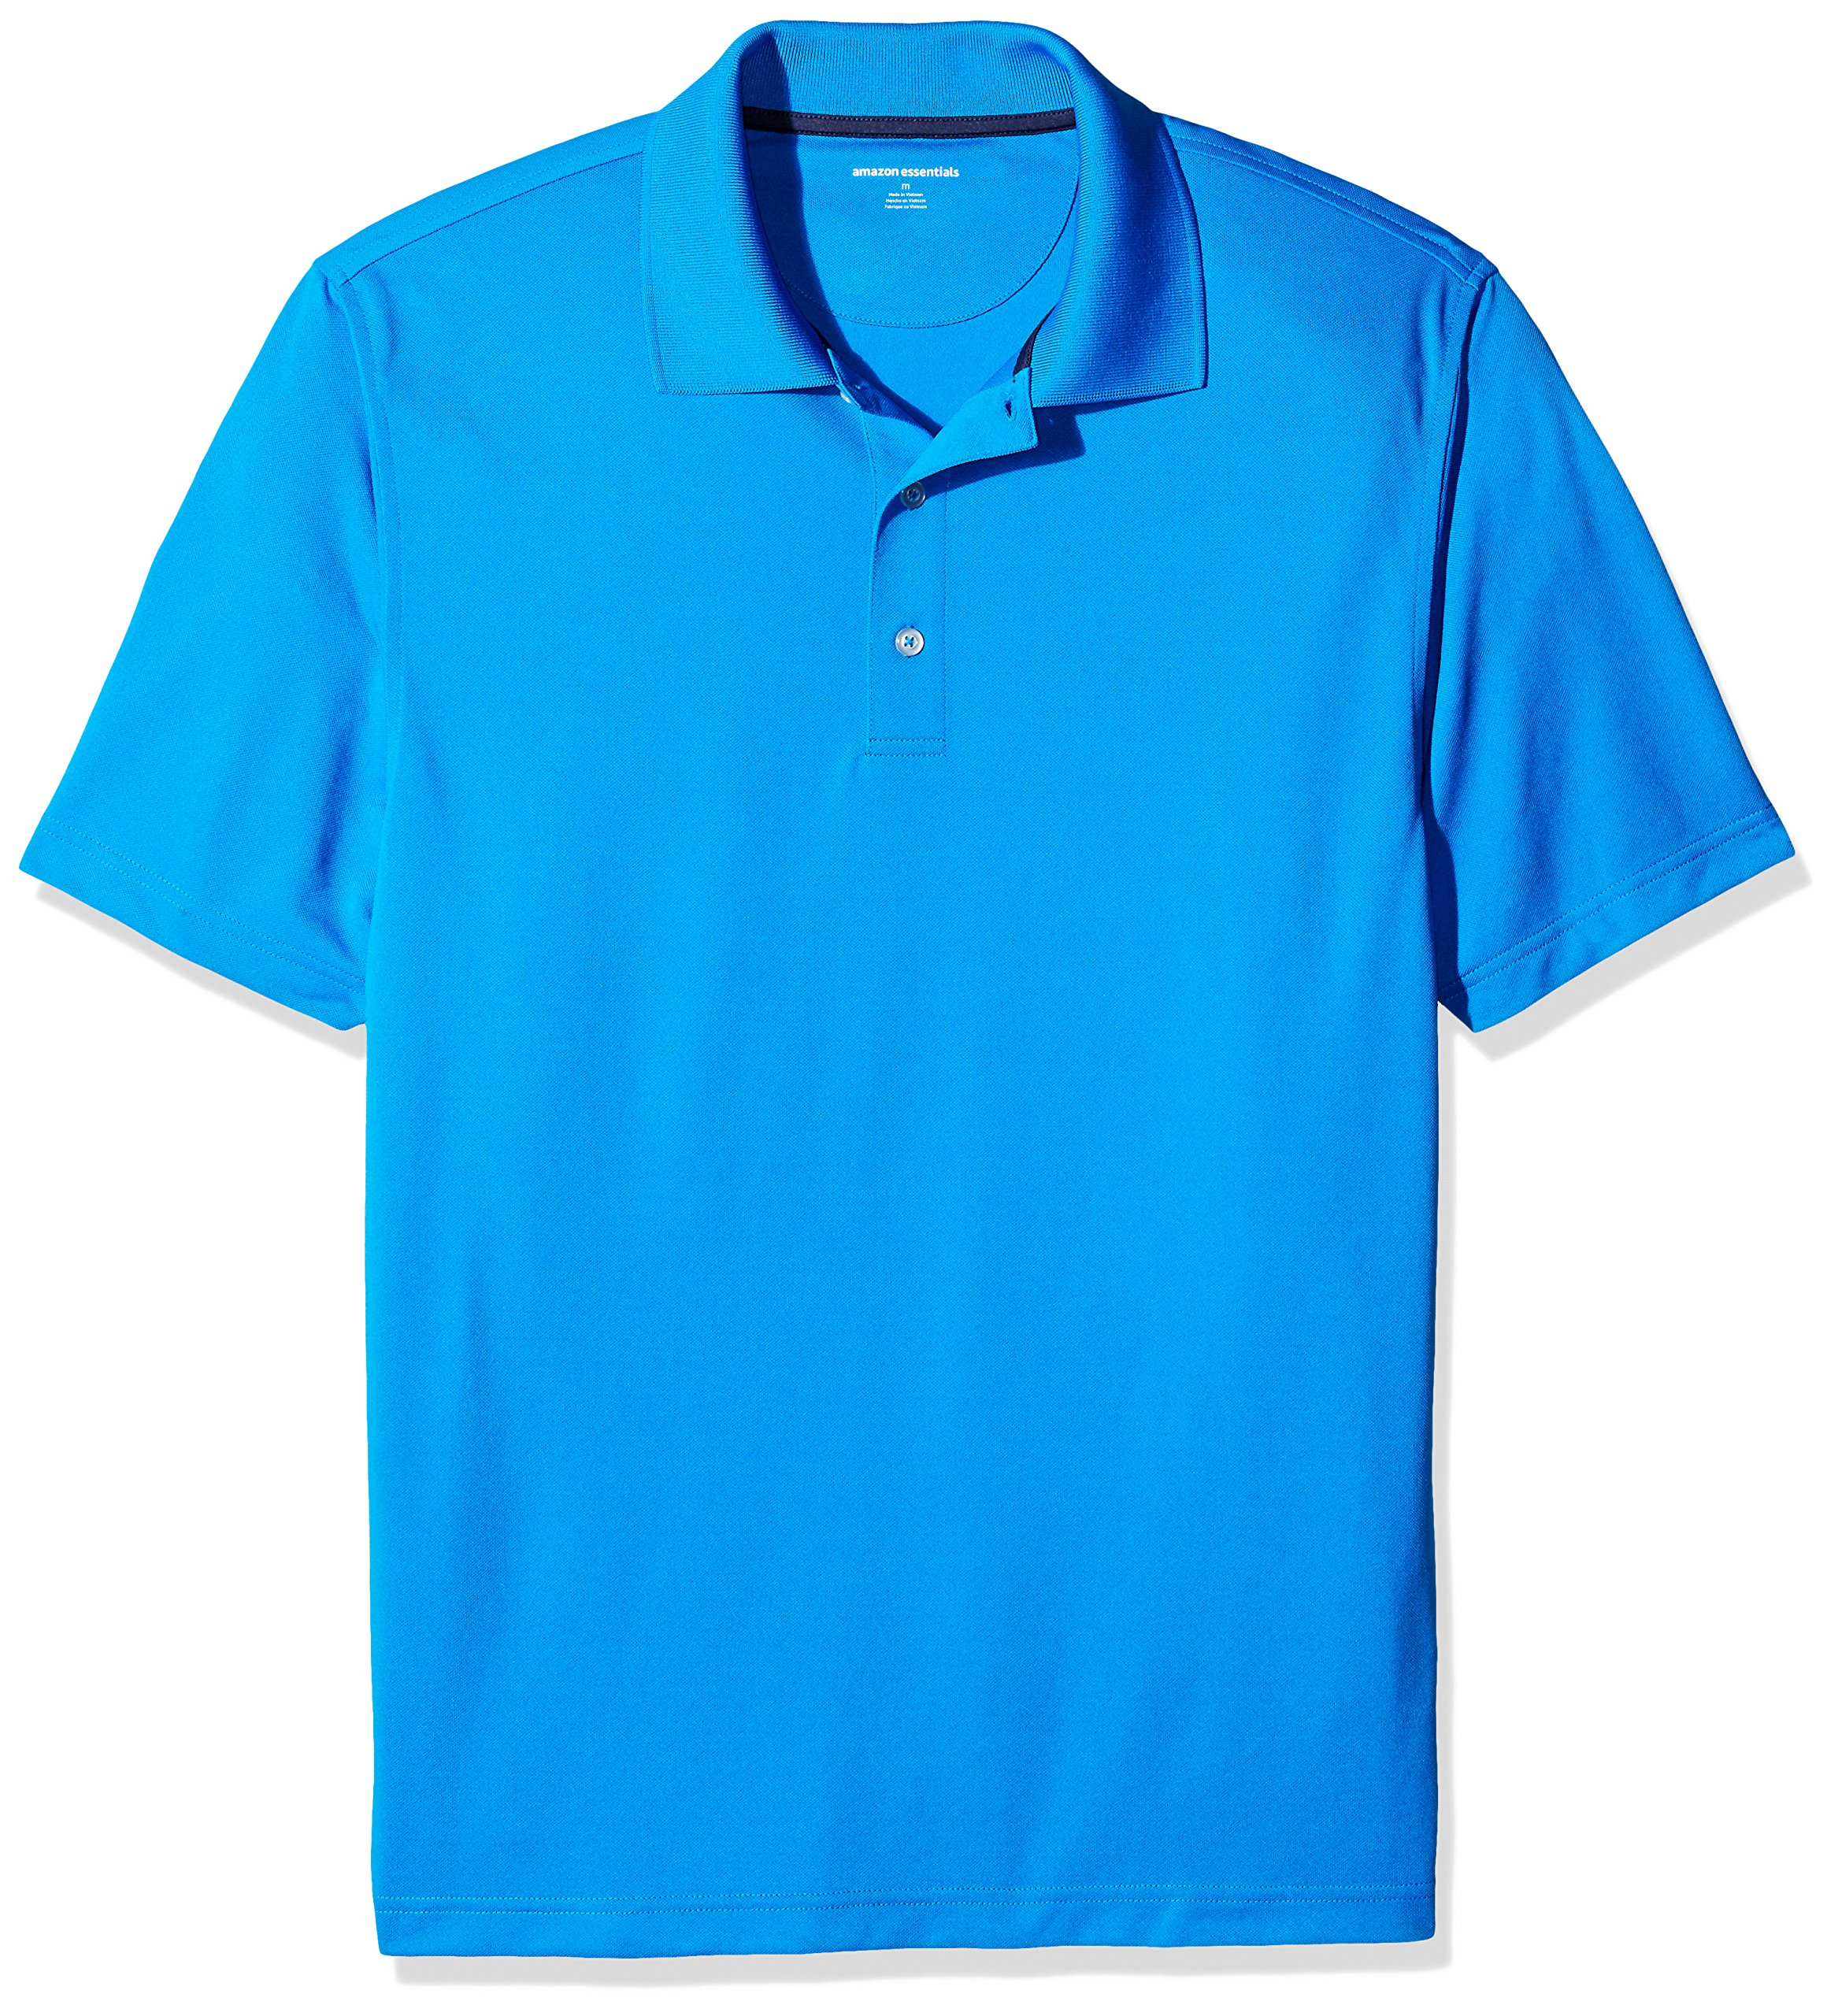 Amazon Essentials Men's Regular-Fit Quick-Dry Golf Polo Shirt, Electric Blue, X-Small